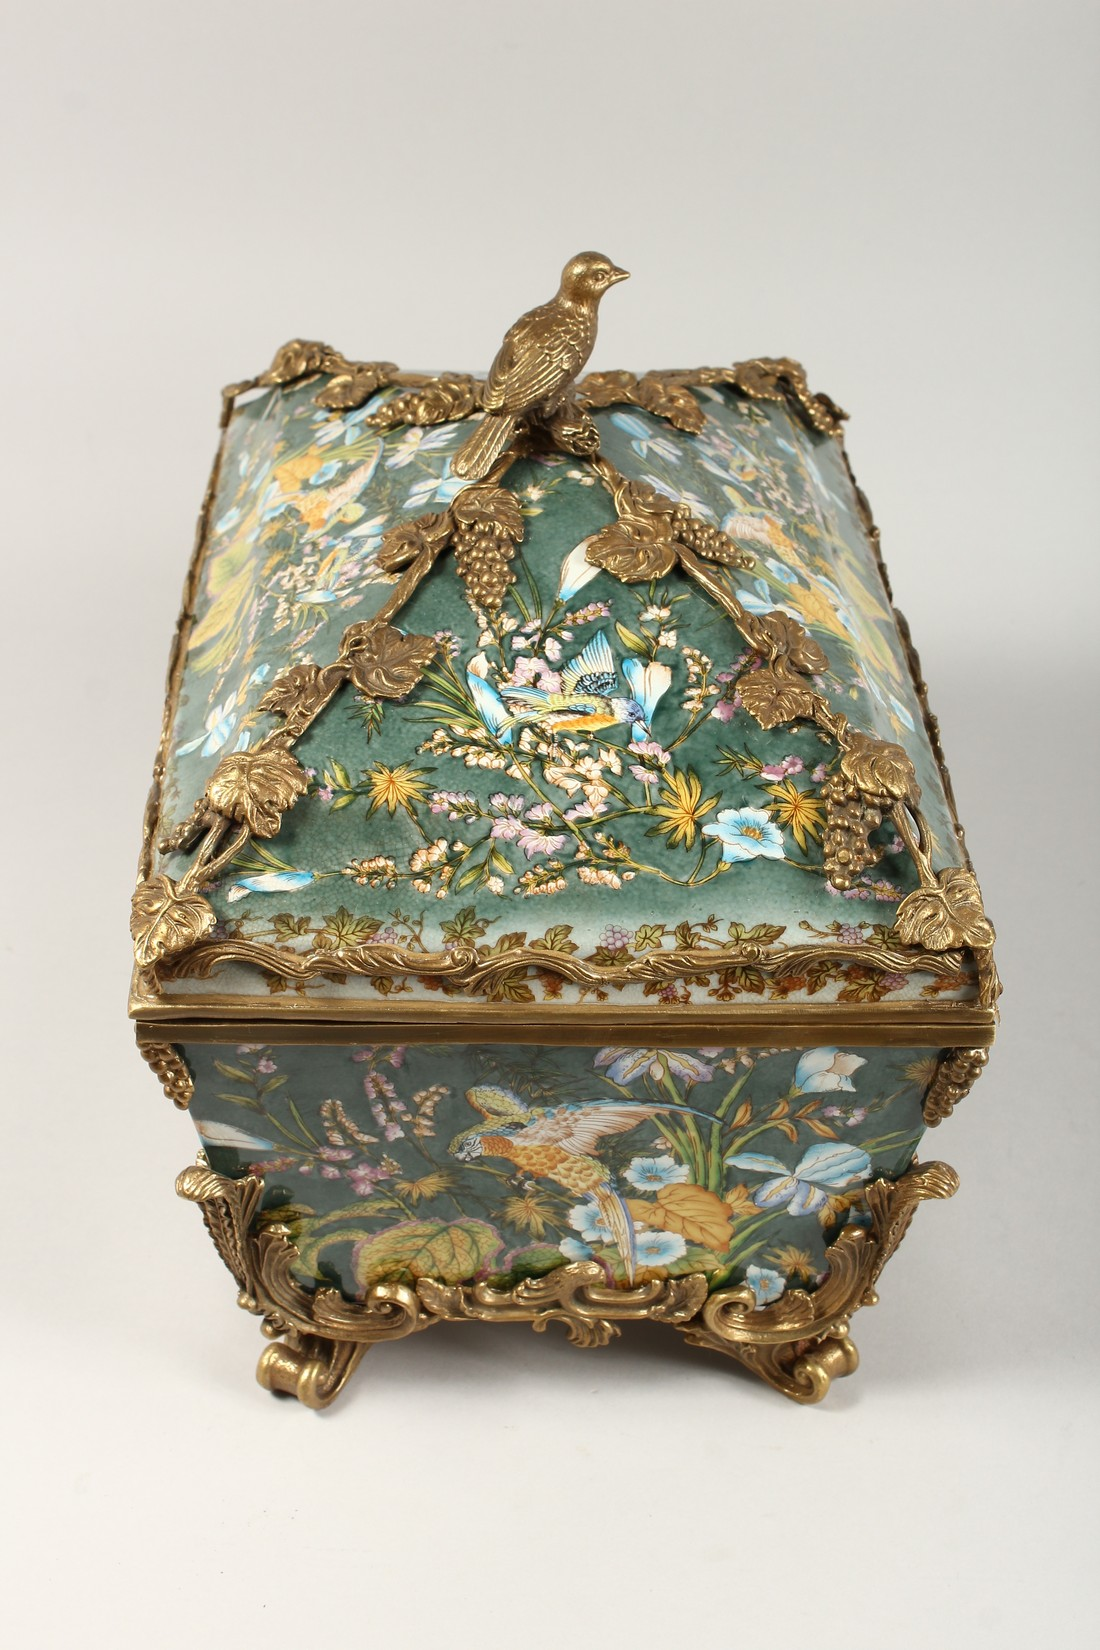 A LARGE CONTINENTAL STYLE PORCELAIN AND BRONZE MOUNTED CASKET, decorated with exotic flowers and - Image 2 of 5